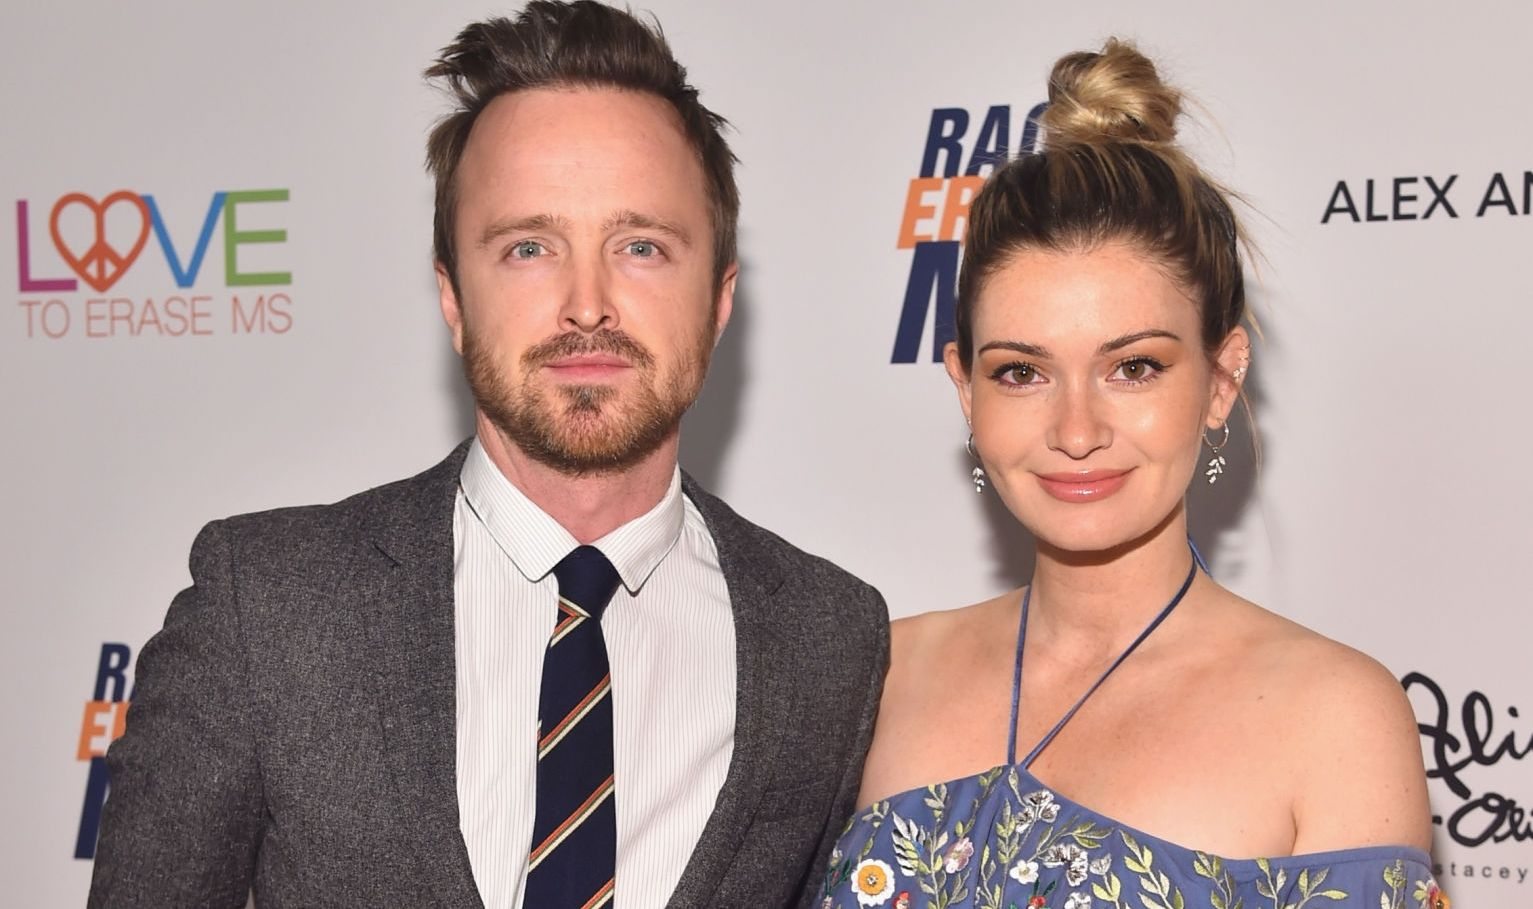 Aaron Paul and his wife